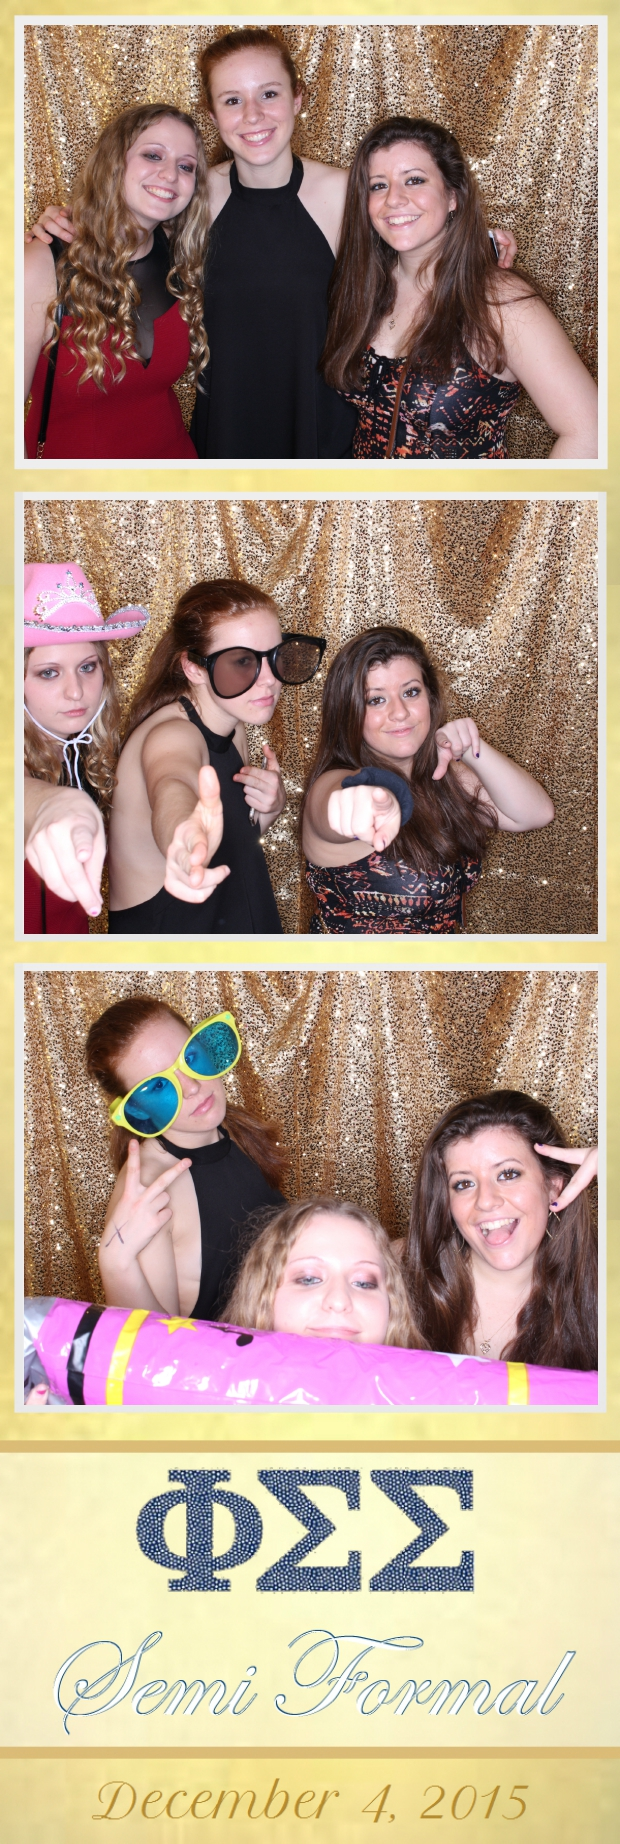 Guest House Events Photo Booth Phi Sigma Sigma Semi Formal (69).jpg